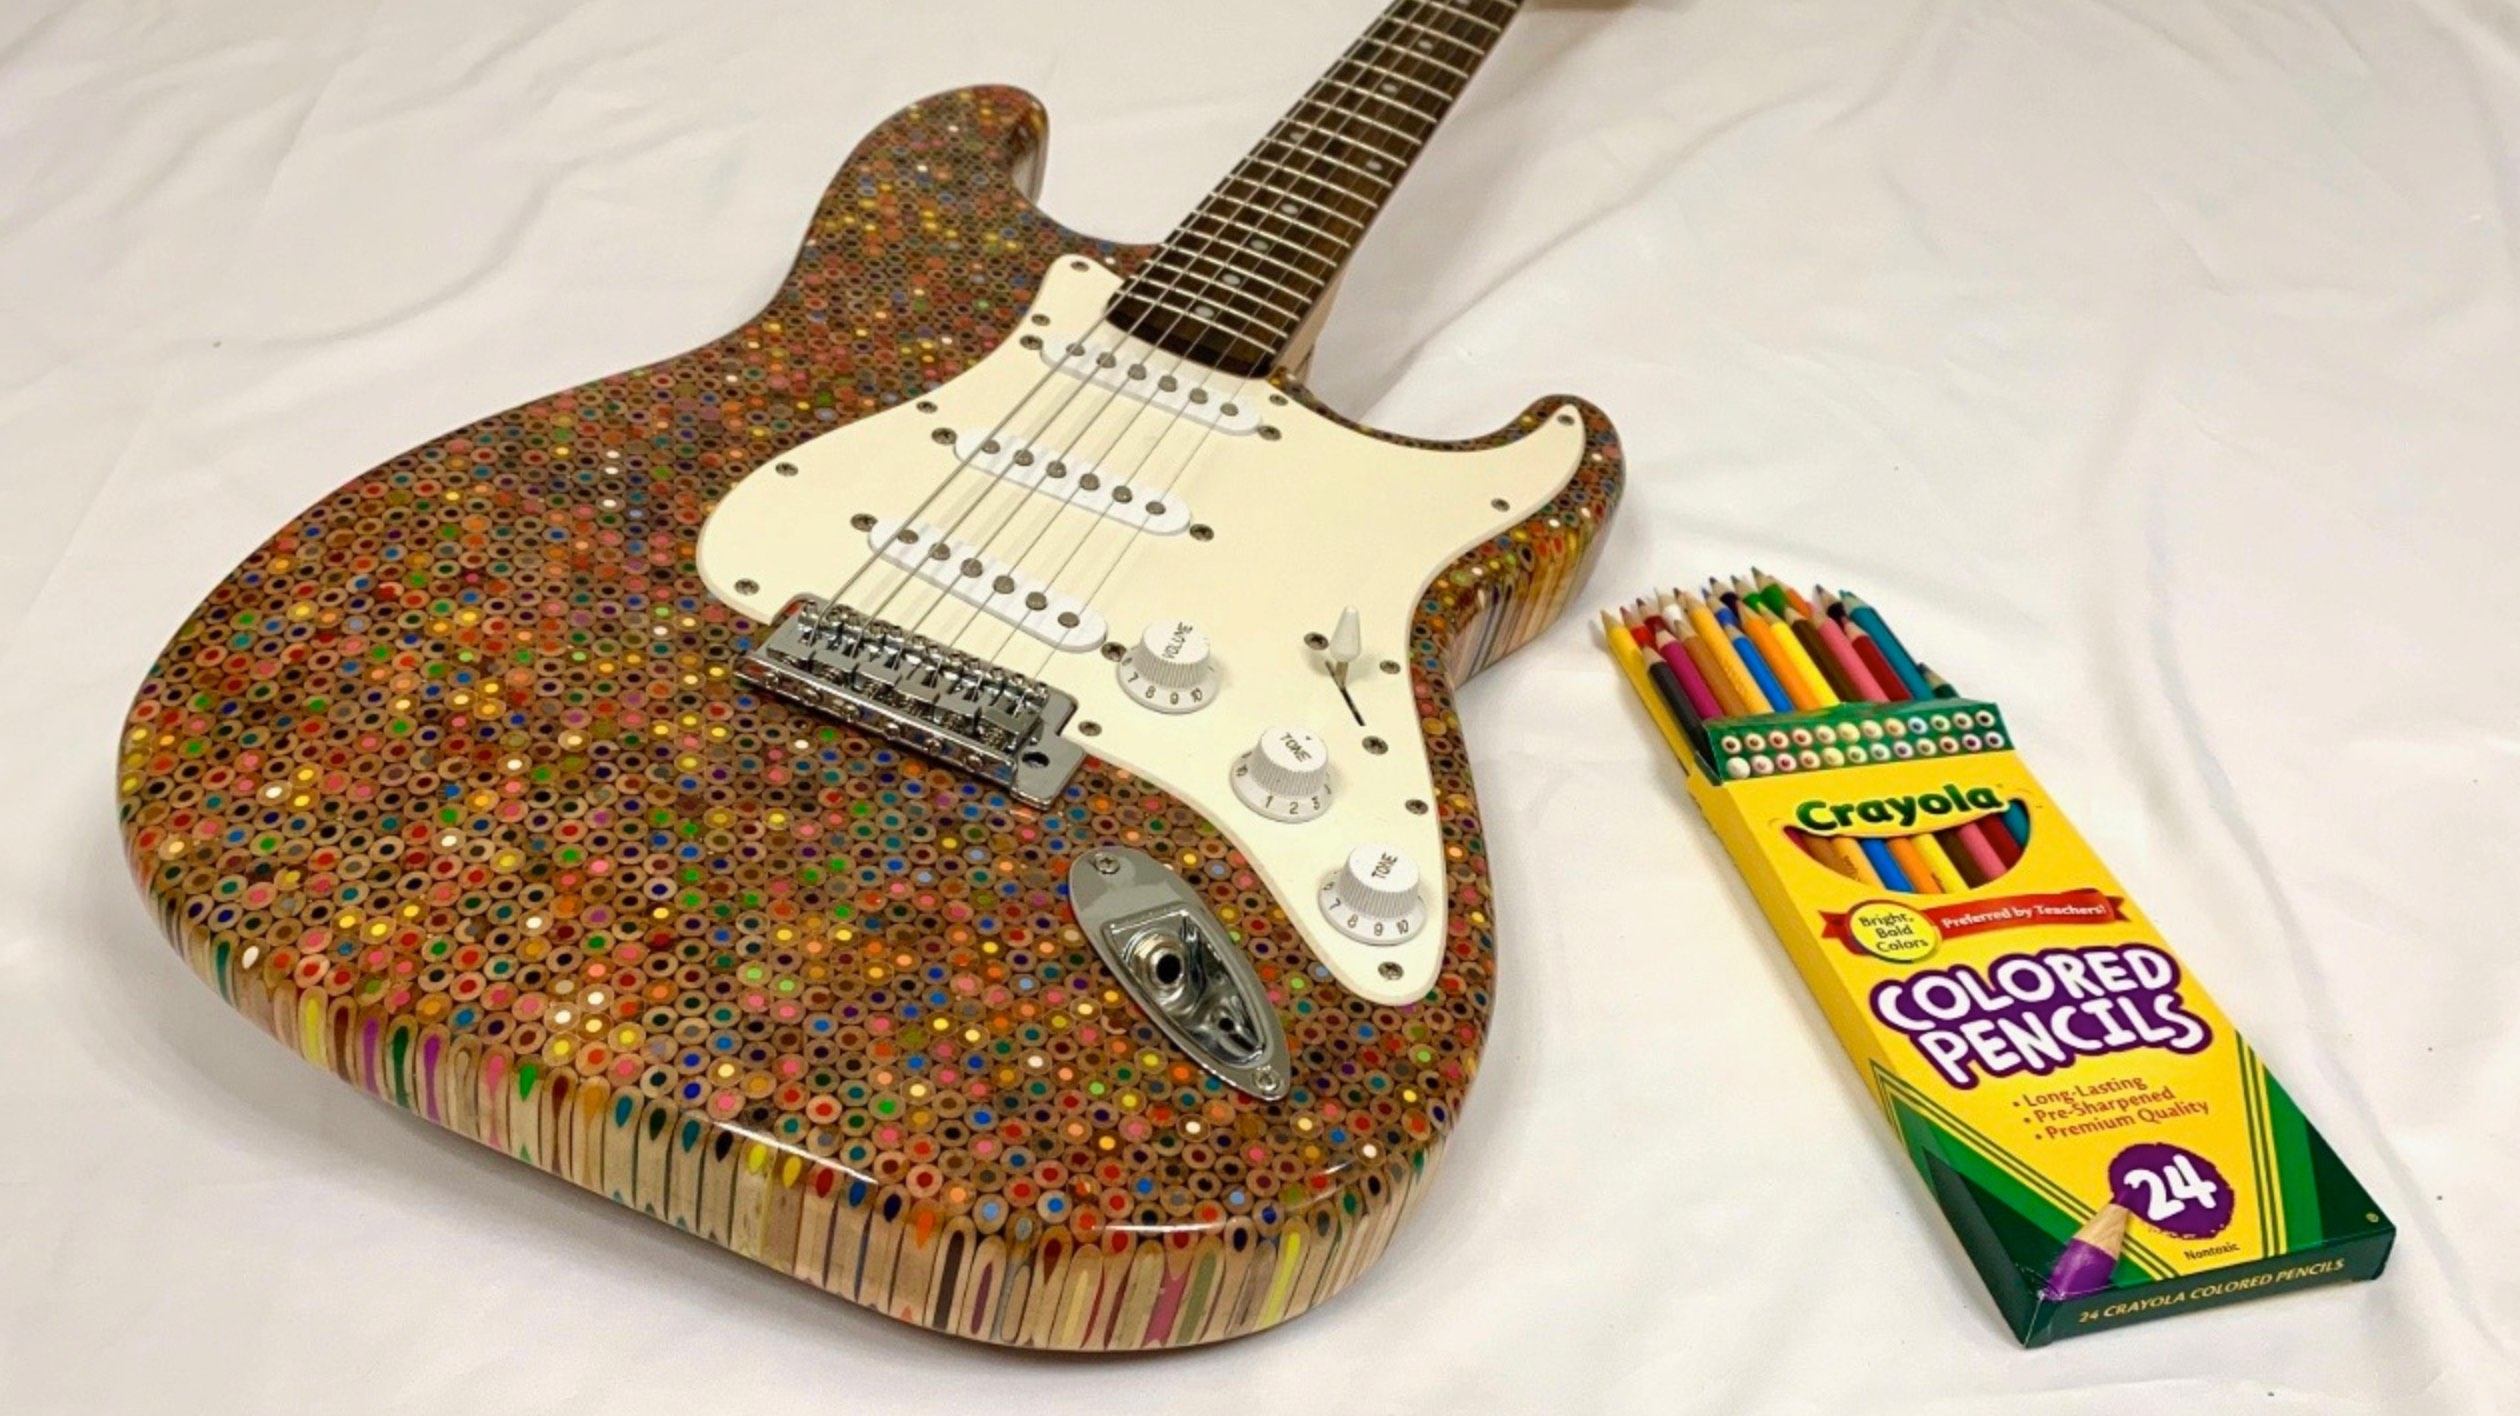 i_built_a_guitar_out_of_1200_colored_pencils.jpg